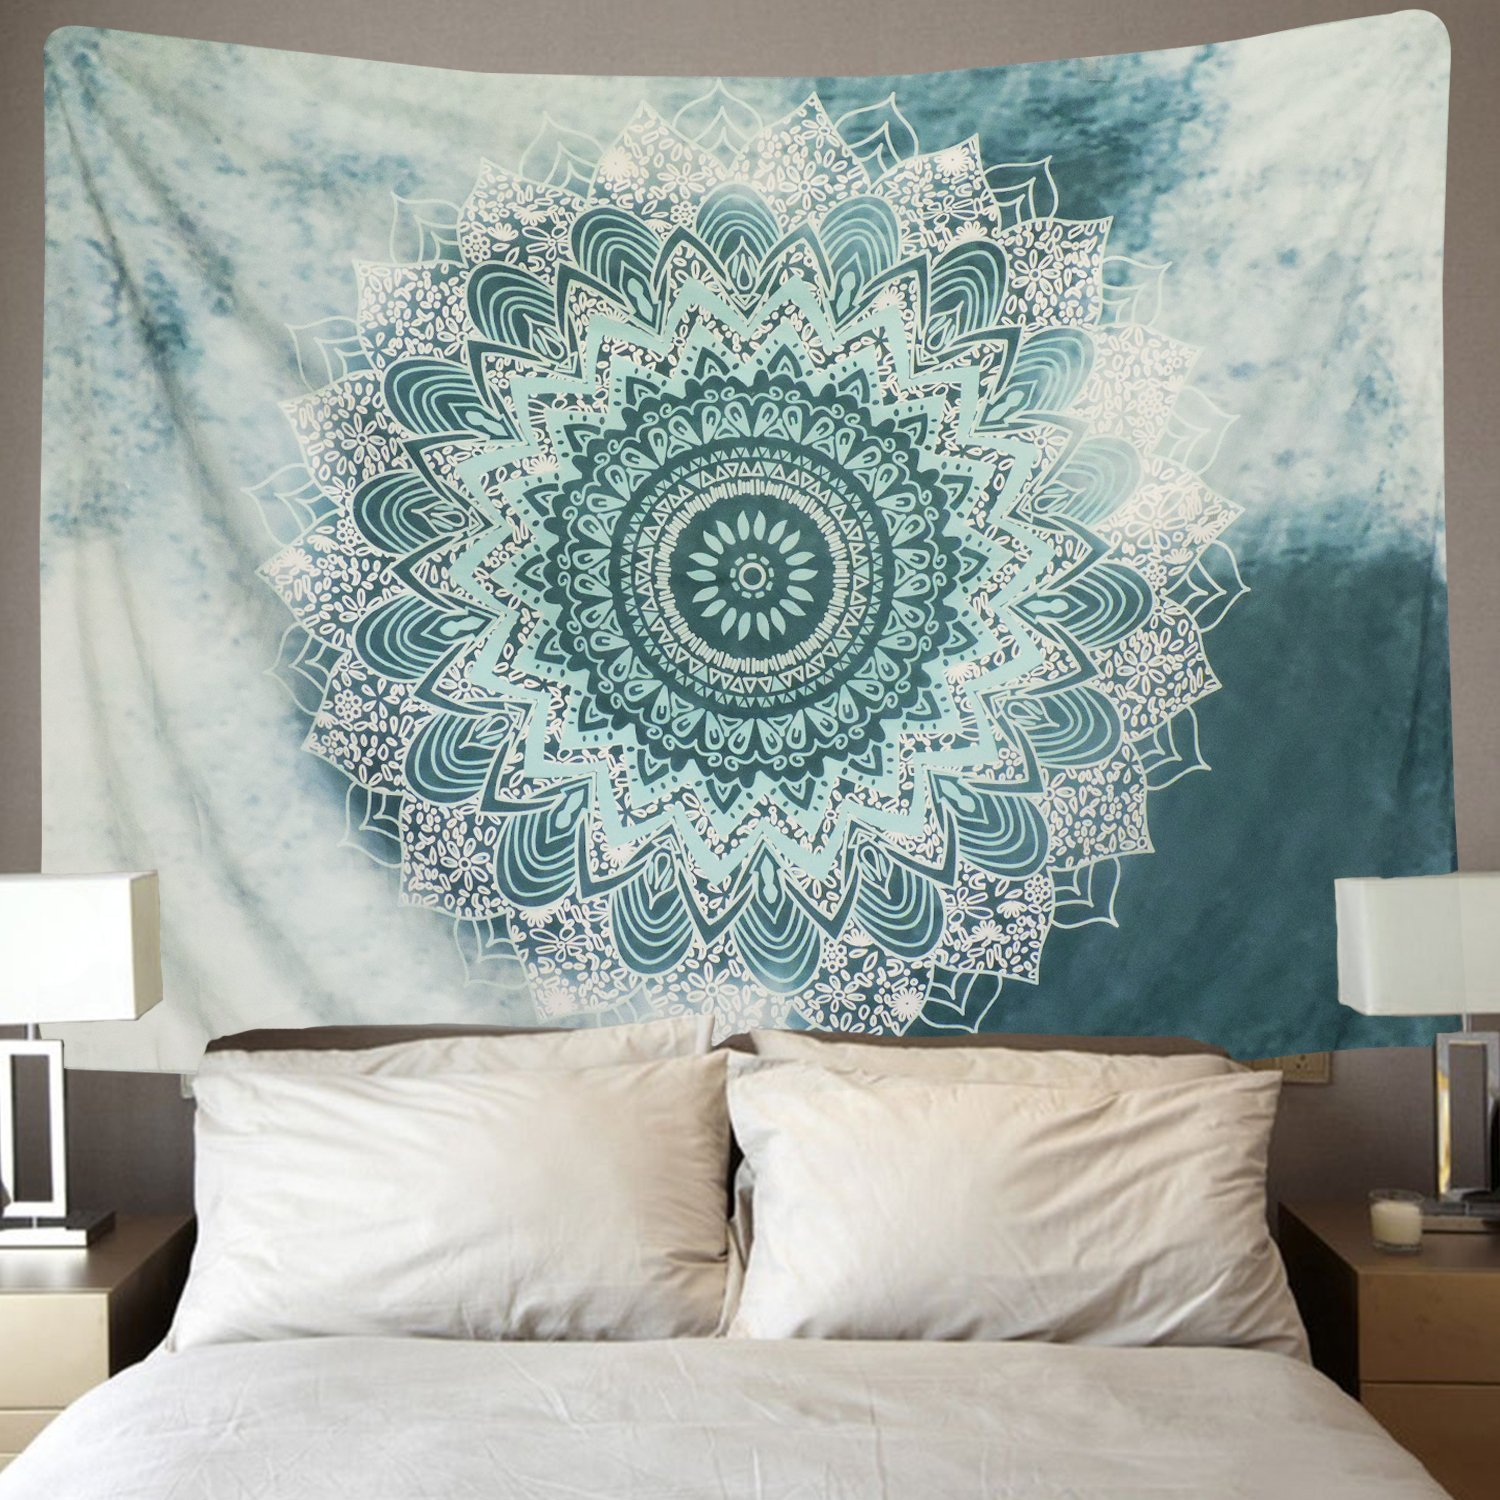 SENGE Indian Mandala Tapestry Wall Hanging Flower Psychedelic Bohemian Tapestries for Room Multi Color